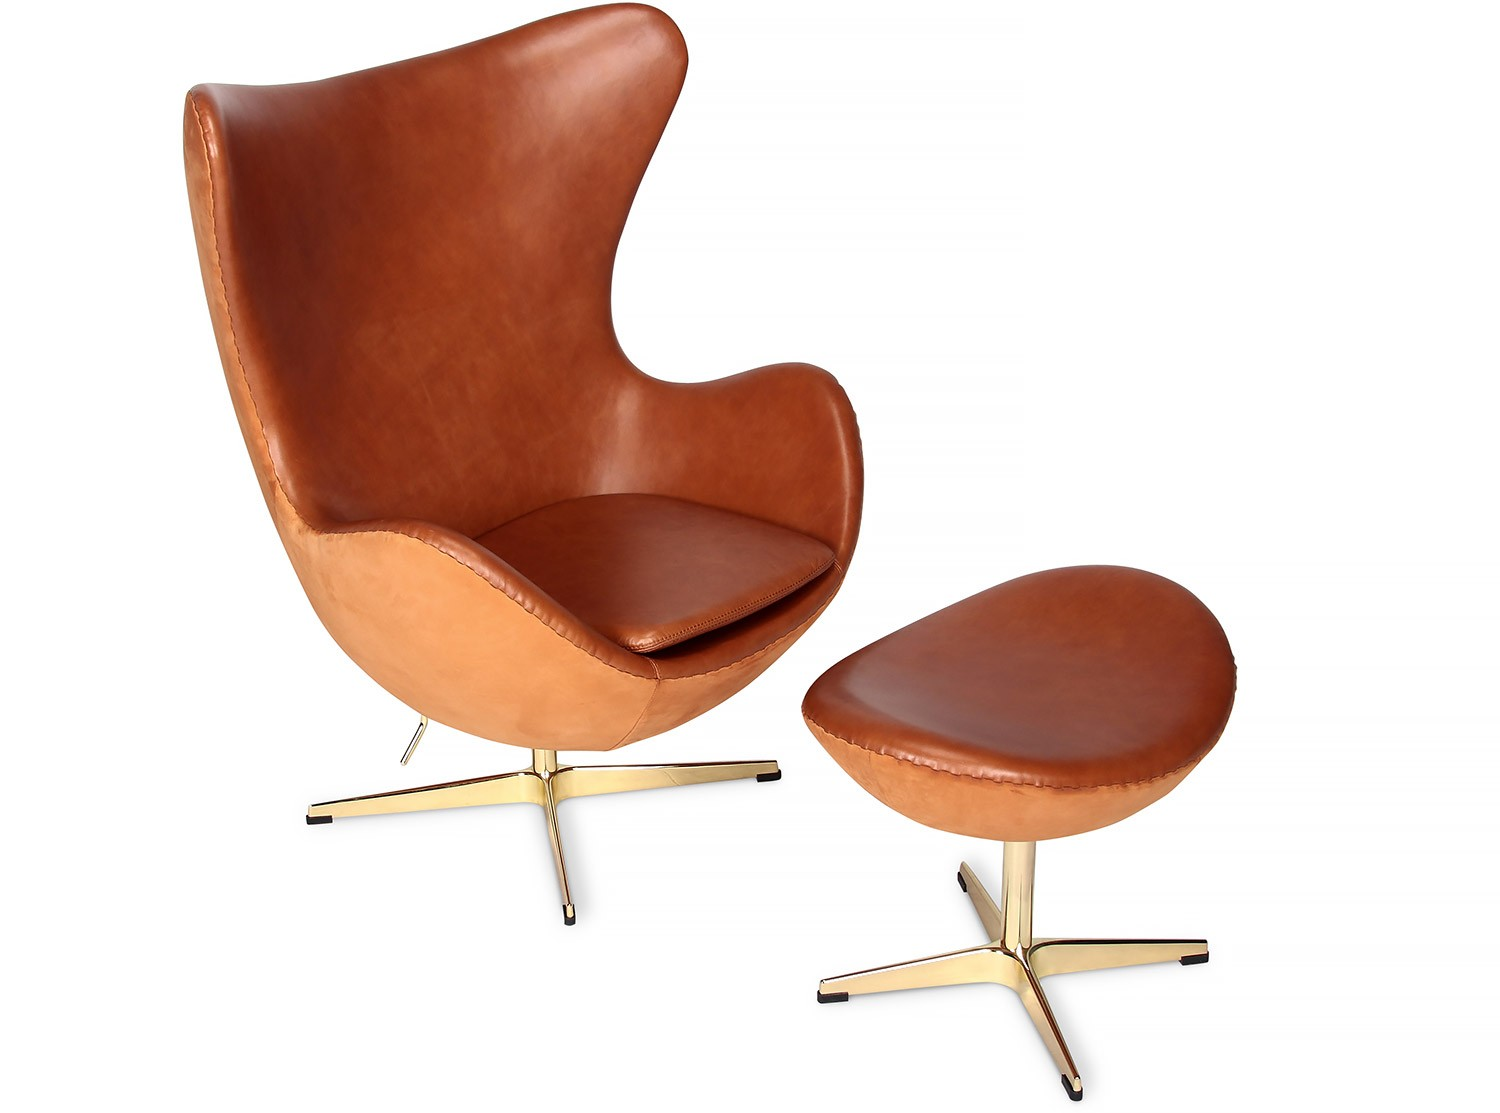 Arne Jacobsen Egg Chair Replica Egg Chair By Arne Jacobsen Nubuck Anniversary Collector